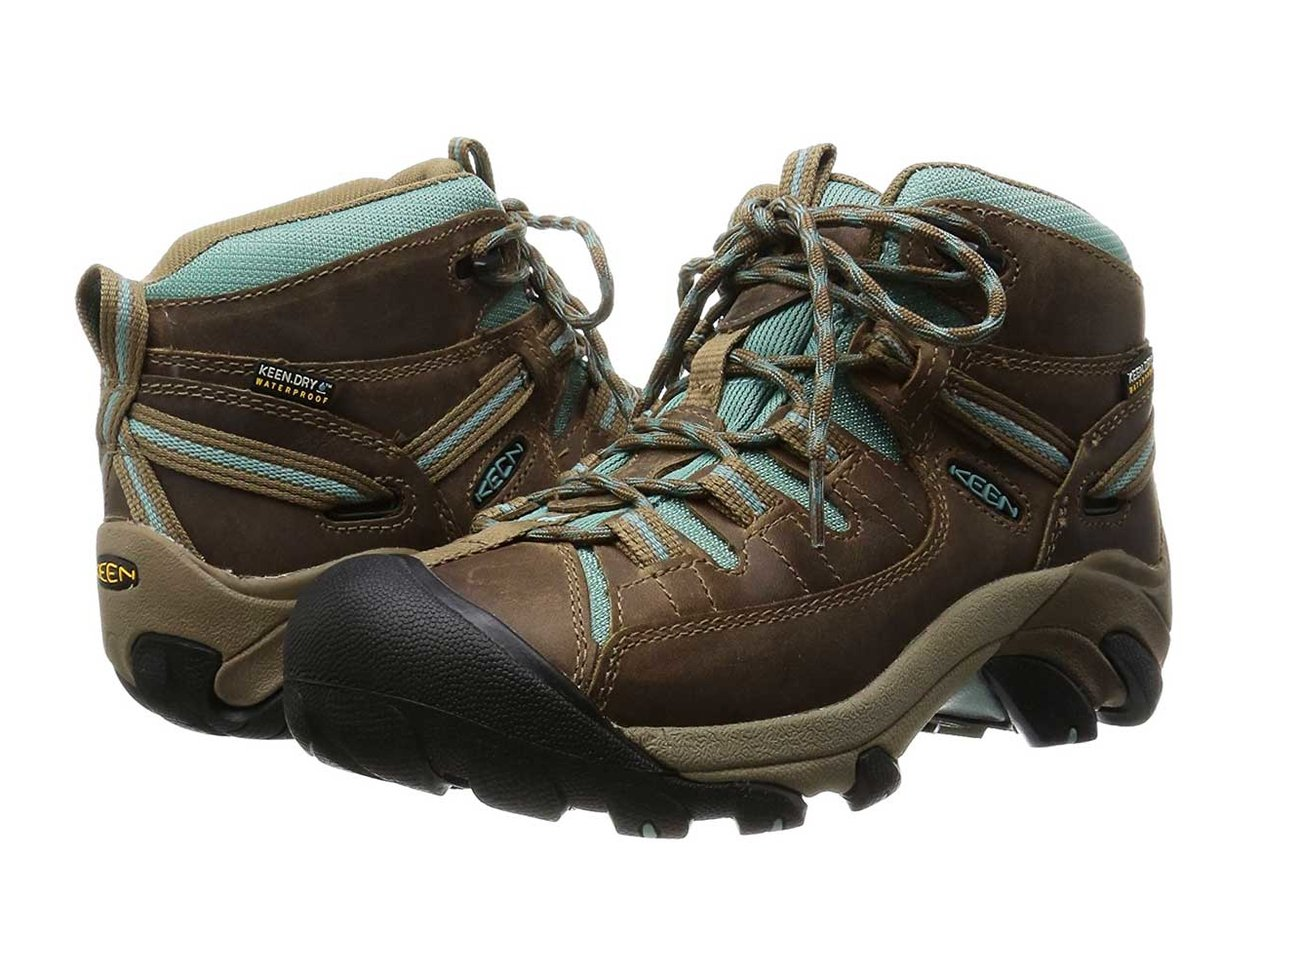 Best Waterproof Hiking Shoes Women